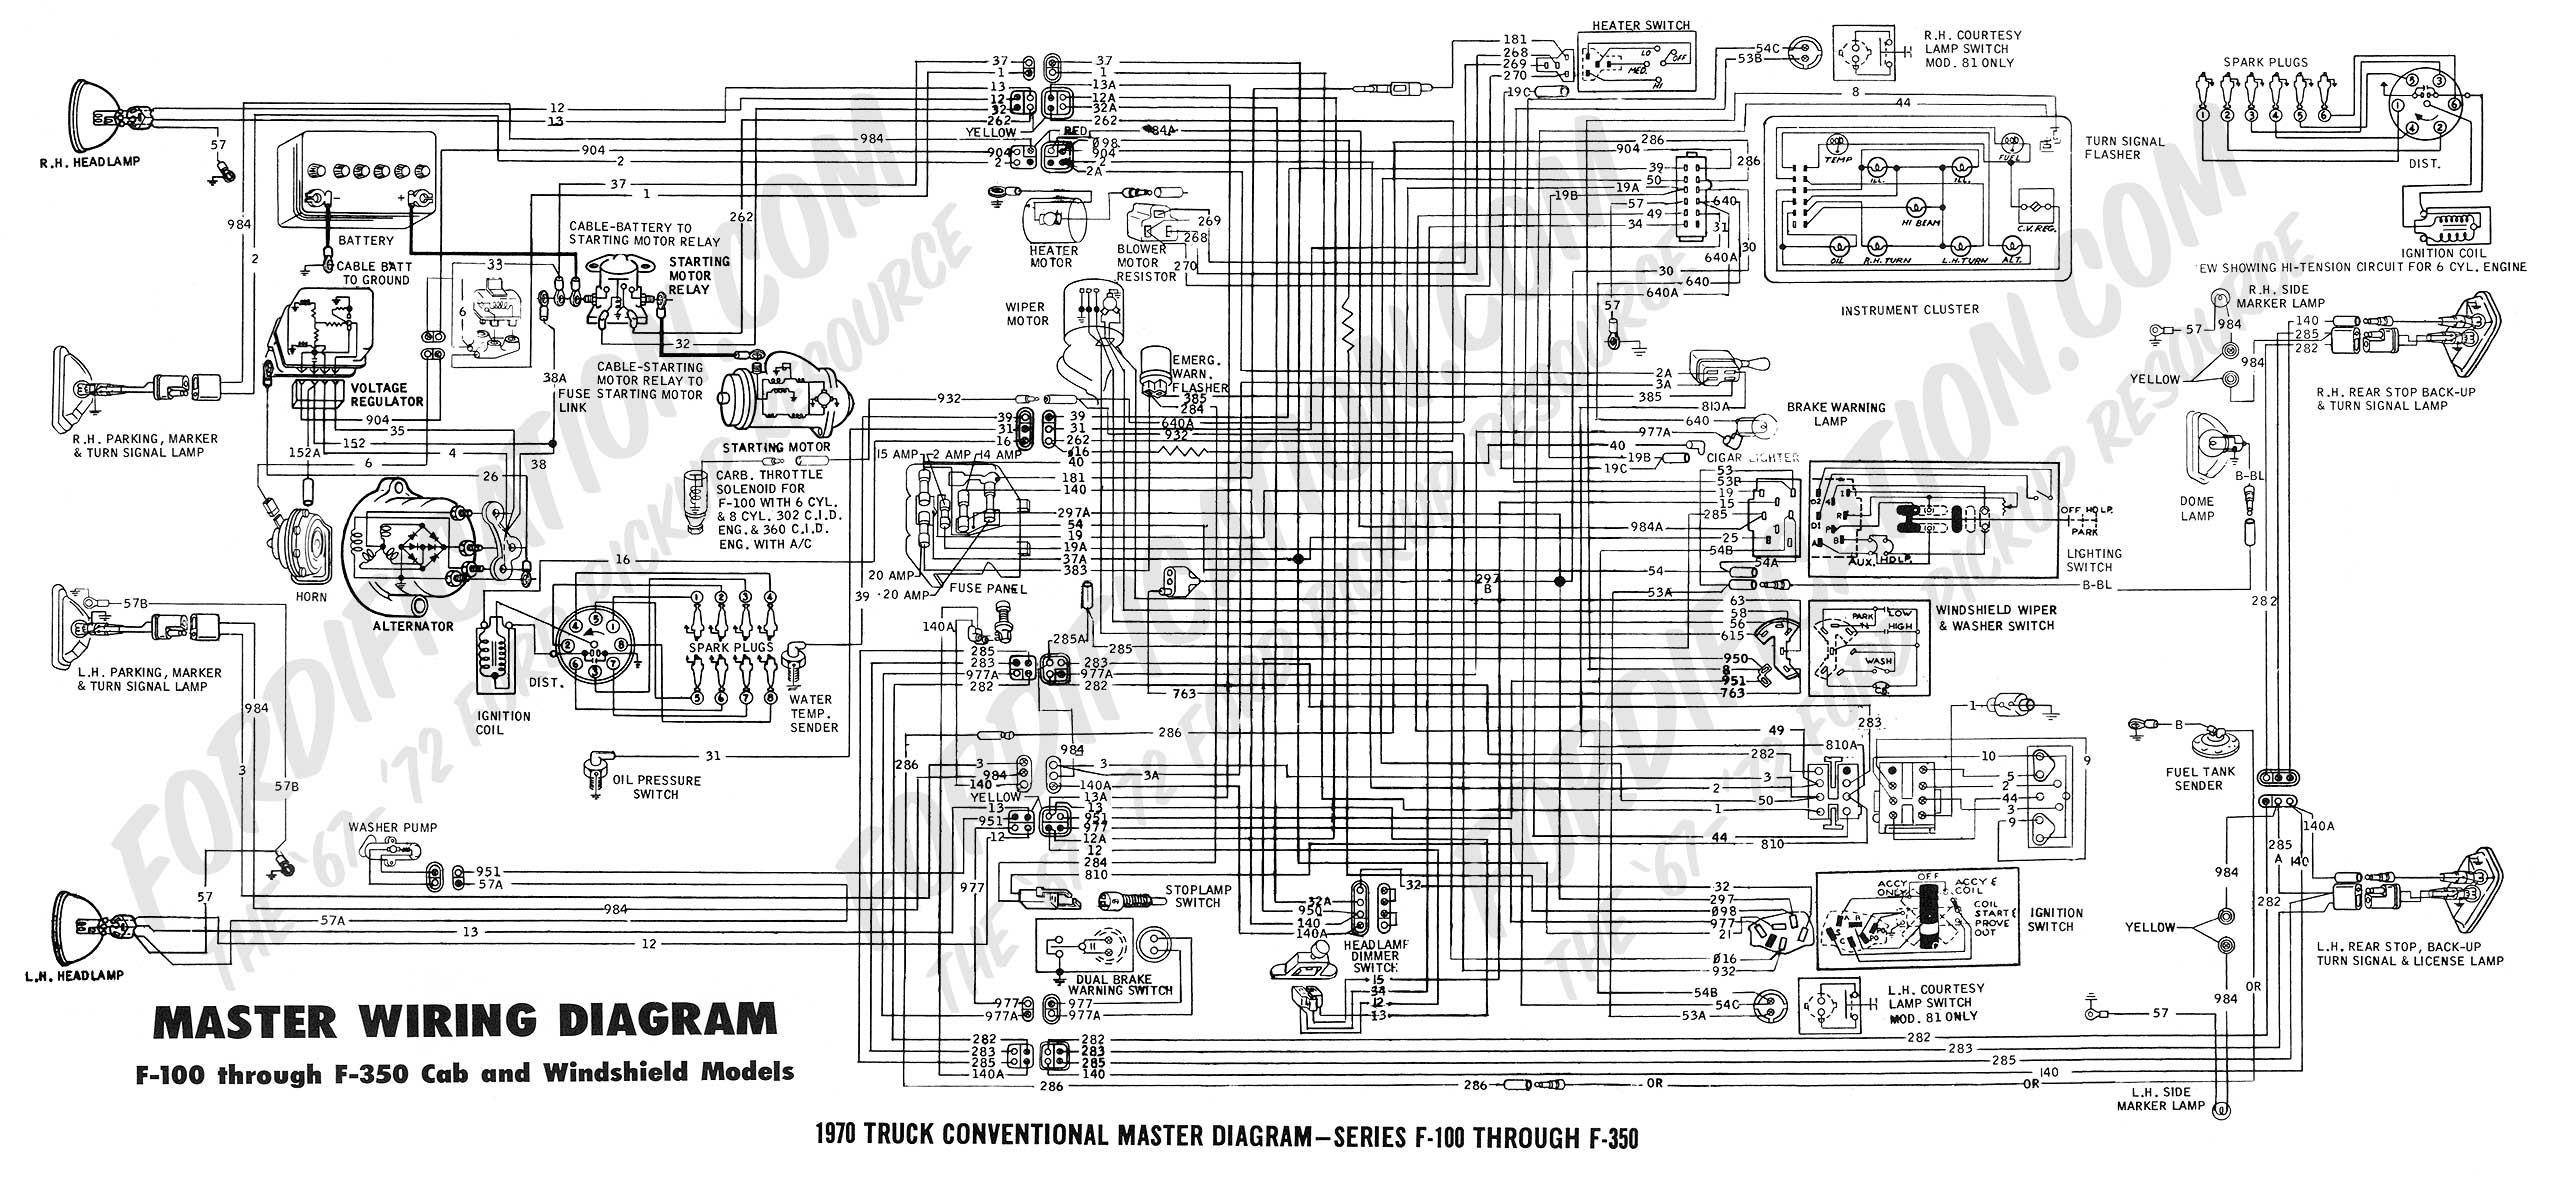 diesel wiring diagram ford truck technical drawings and schematics section h wiring 1970 f 100 f250 master diagram